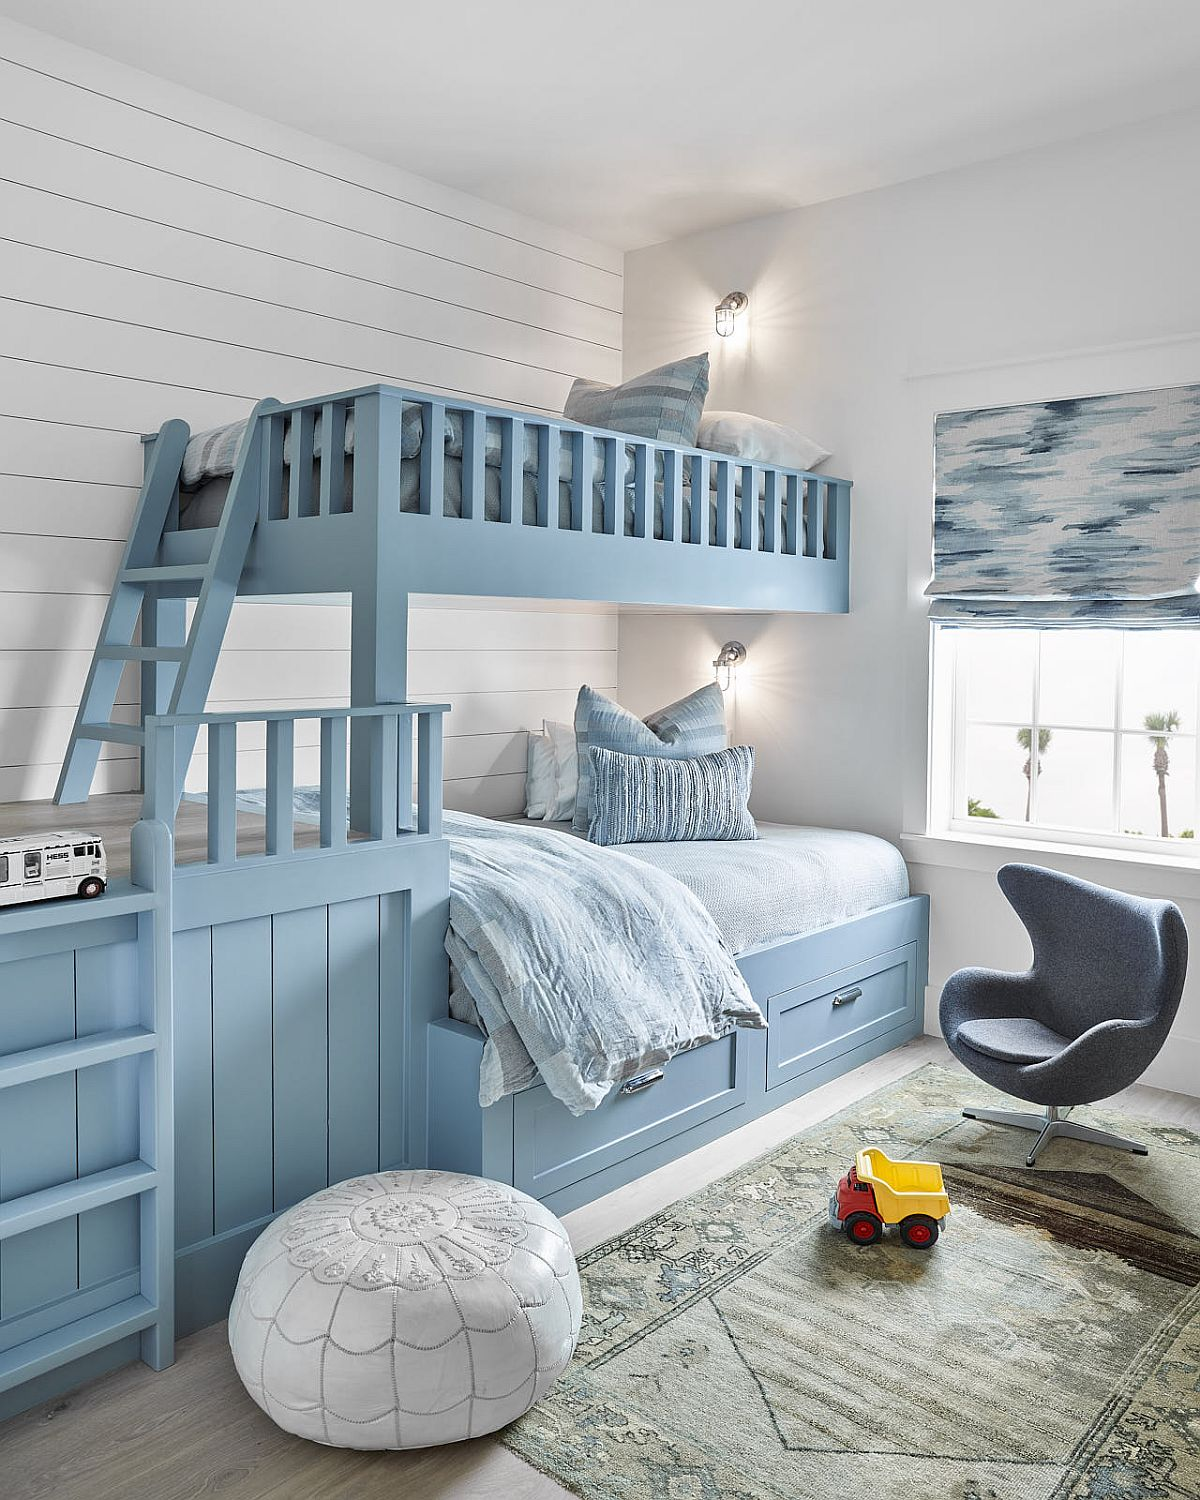 Bunk beds in blue for the beach style kids' bedroom